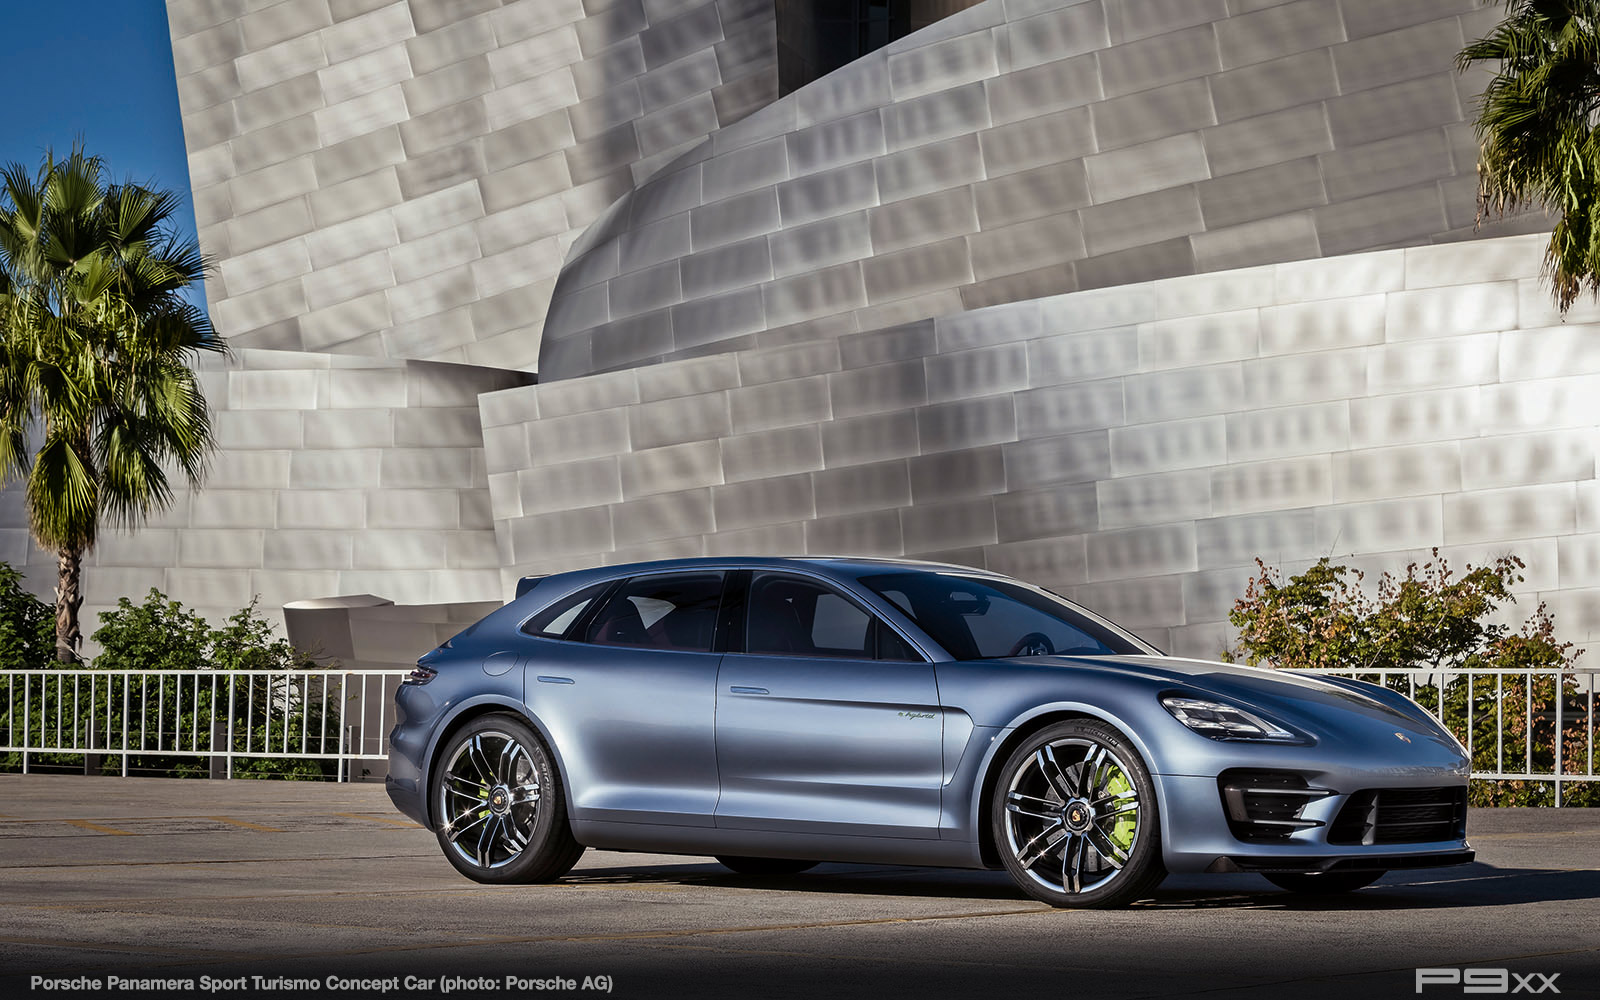 2012 porsche panamera sport turismo concept car p9xx leave a reply click here to cancel the reply sciox Choice Image